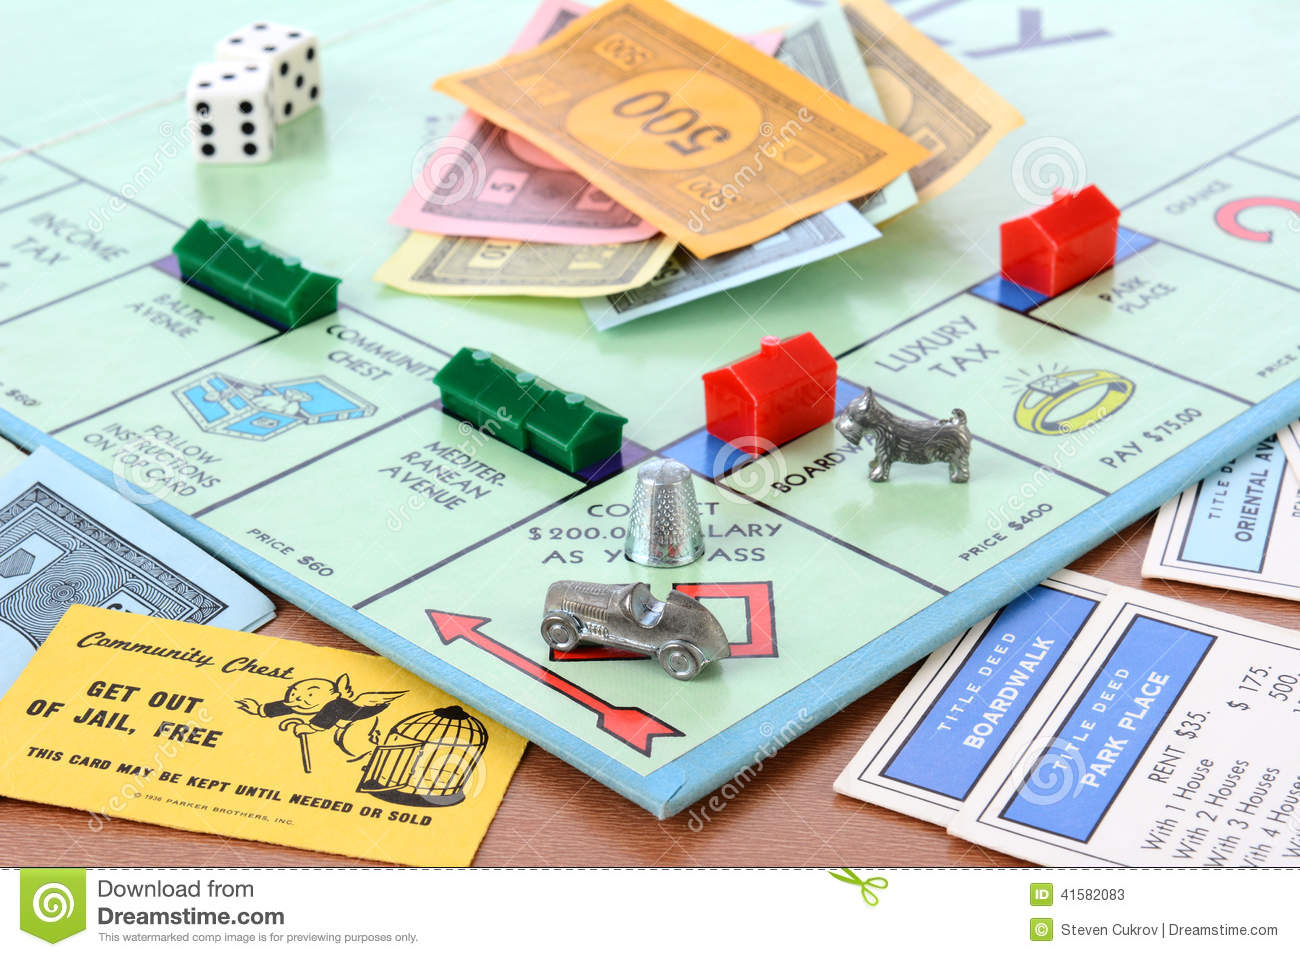 Custom Card Template monopoly cards template : IRVINE, CA - MAY 19, 2014: Monopoly Board Game Closeup. The classic ...